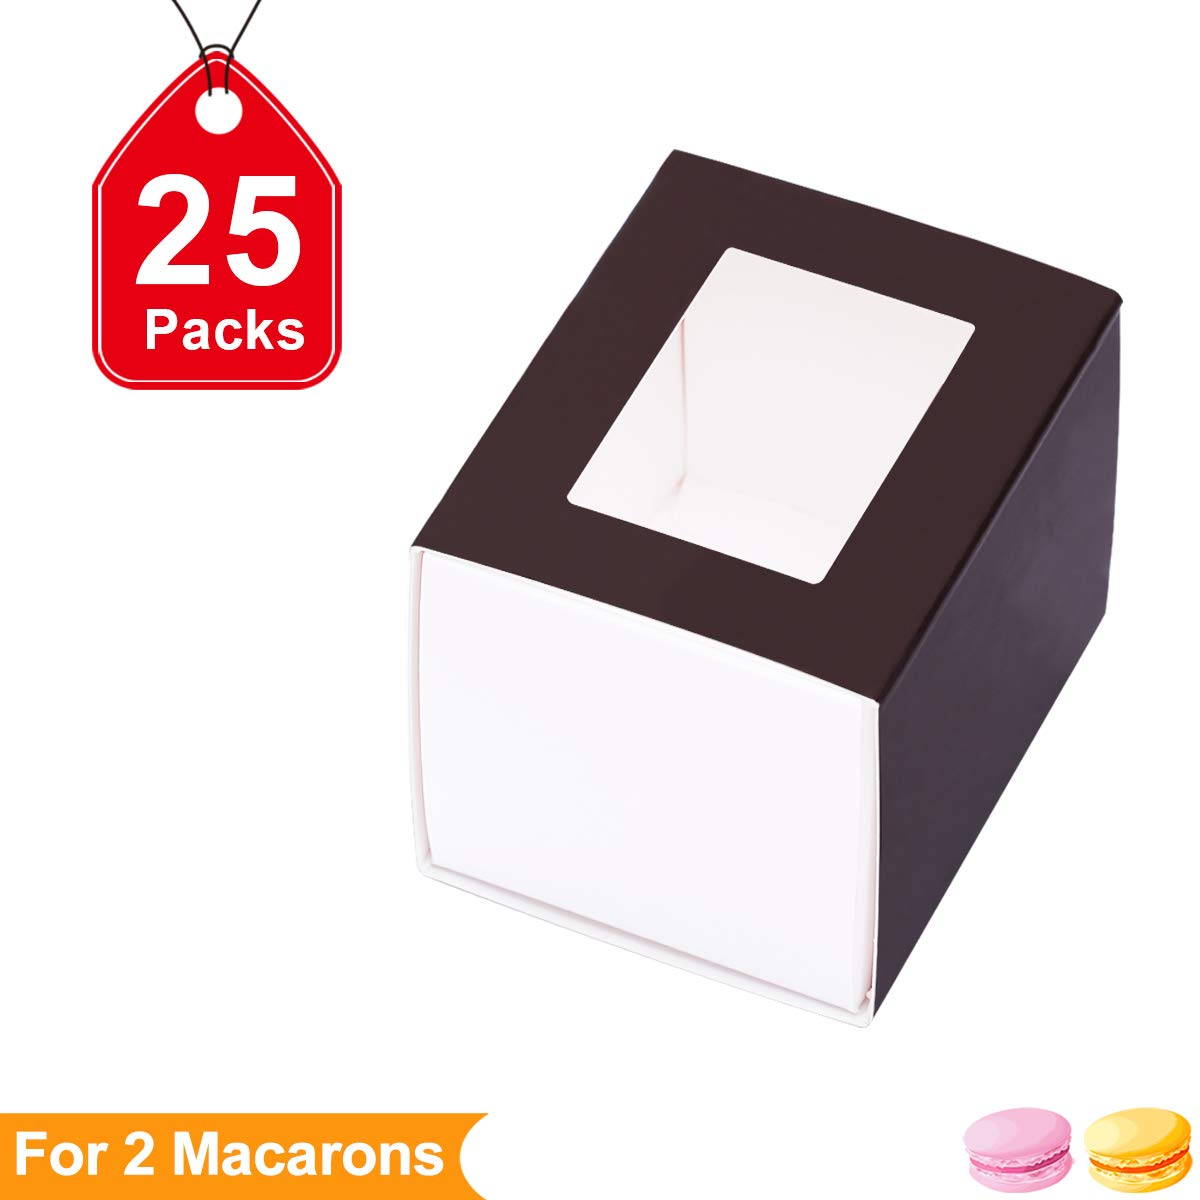 Macaron Boxes Macarons Boxes Macaroons Boxes Macaroon Boxes Macaroon Box Macarons Box for 2 Macaron Container Macaroon Packaging Boxes with Clear Window (Brown,25 units pack) by PACKHOME